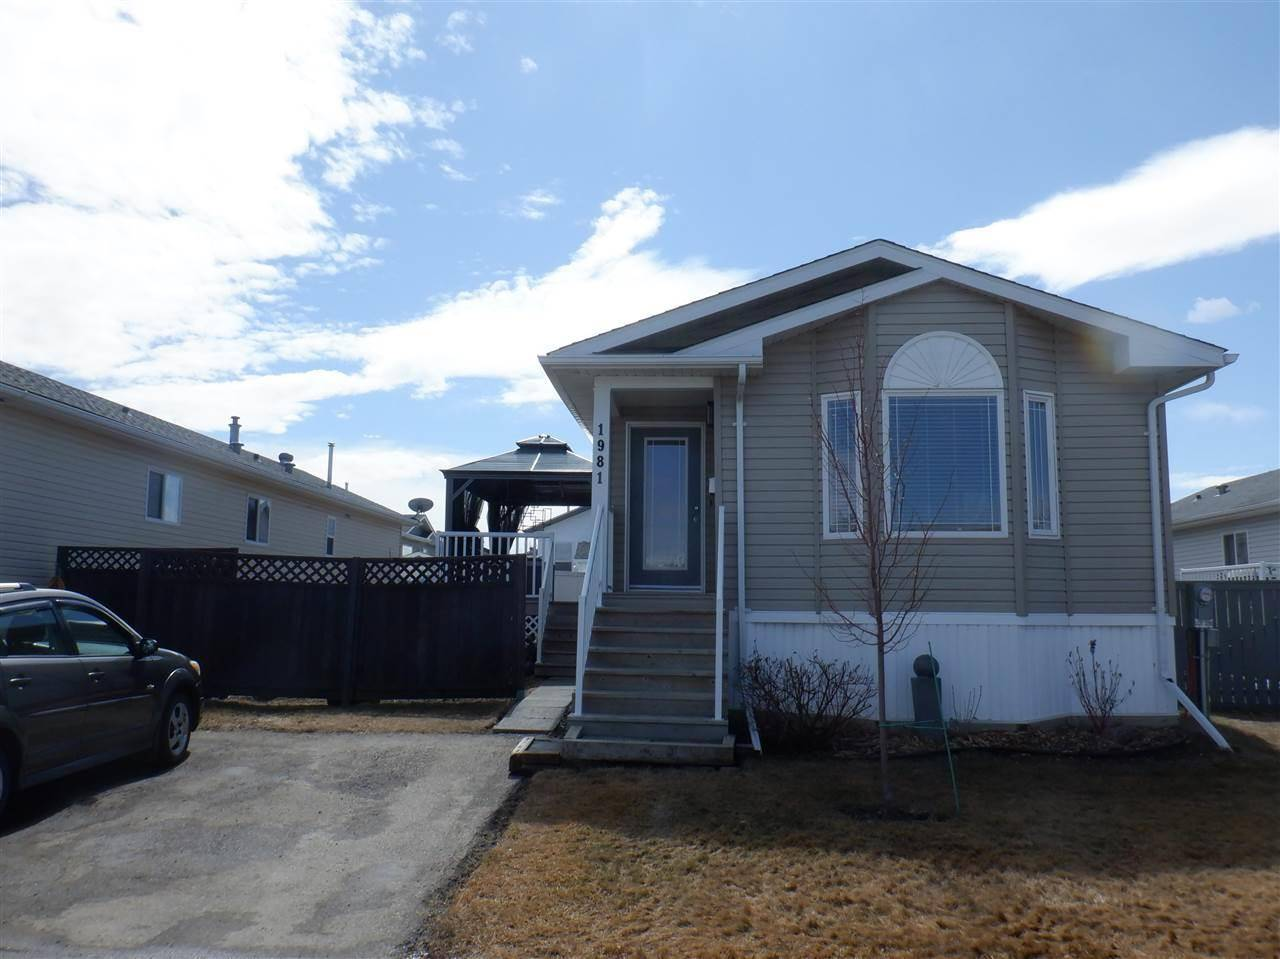 Residential property for sale at 1981 Jubilee Rd Sherwood Park Alberta - MLS: E4195222